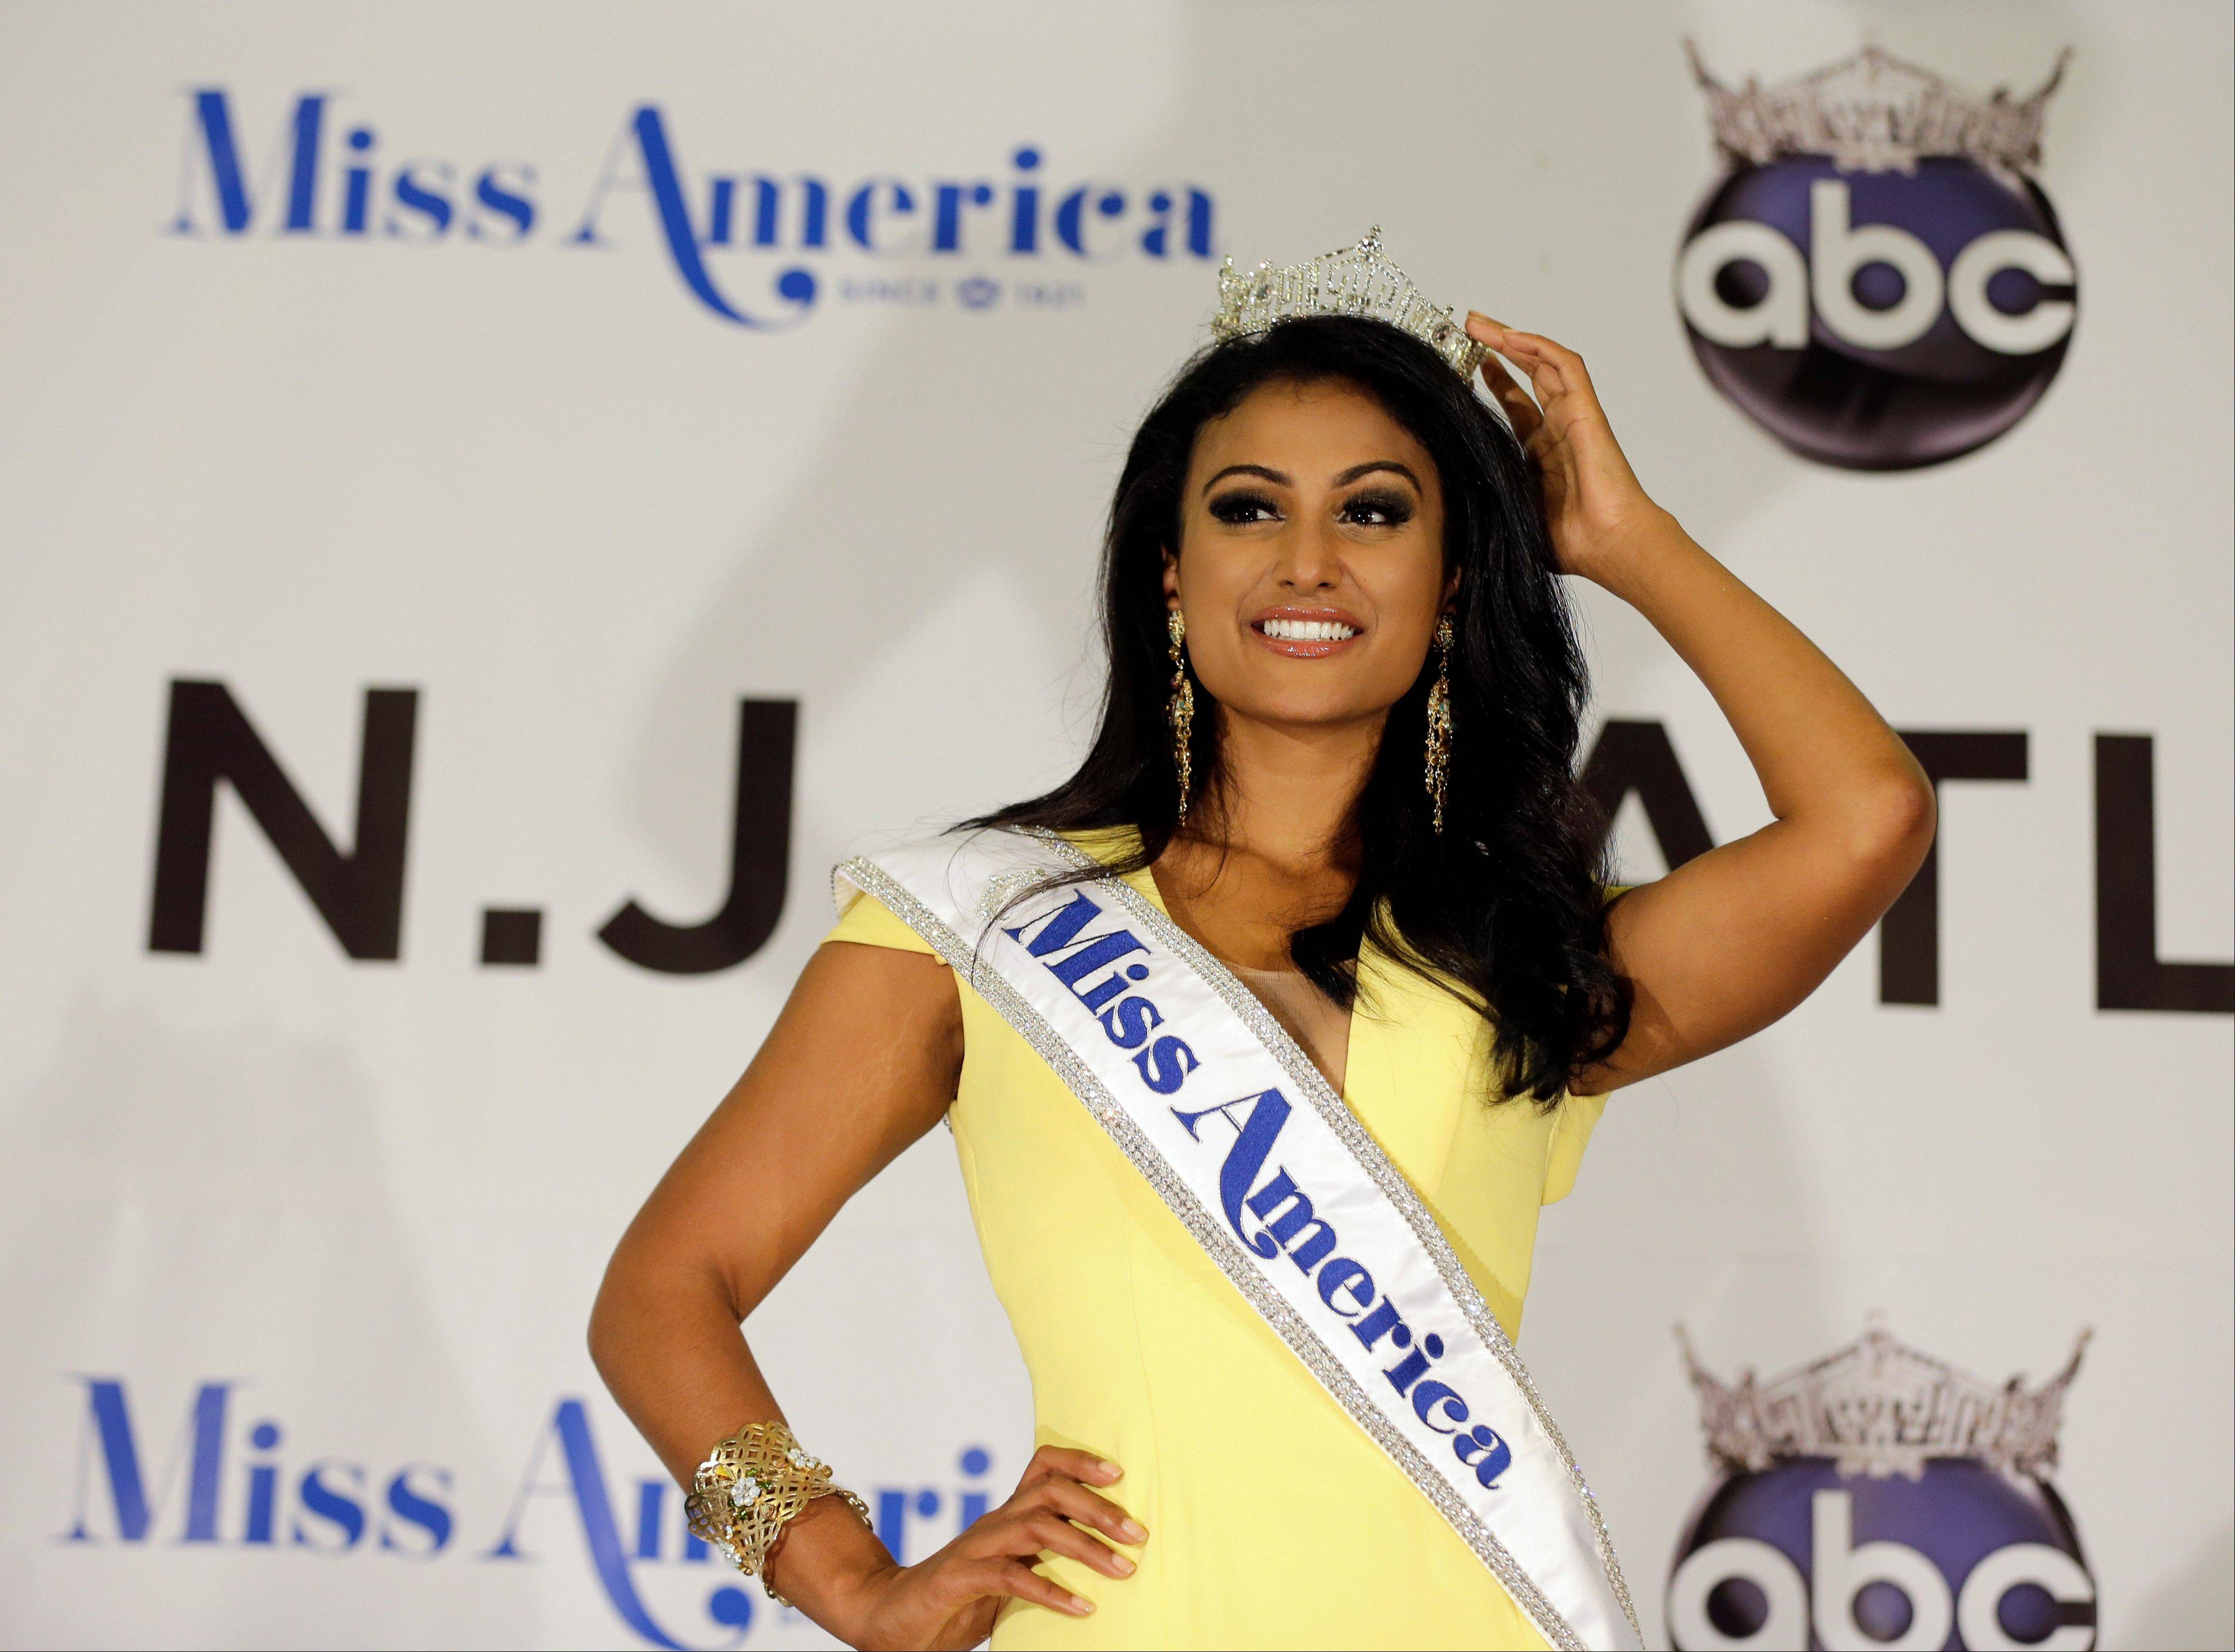 For some who observe the progress of people of color in the U.S., Nina Davaluri�s victory in the Miss America pageant shows that Indian-Americans can become icons even in parts of mainstream American culture that once seemed closed.